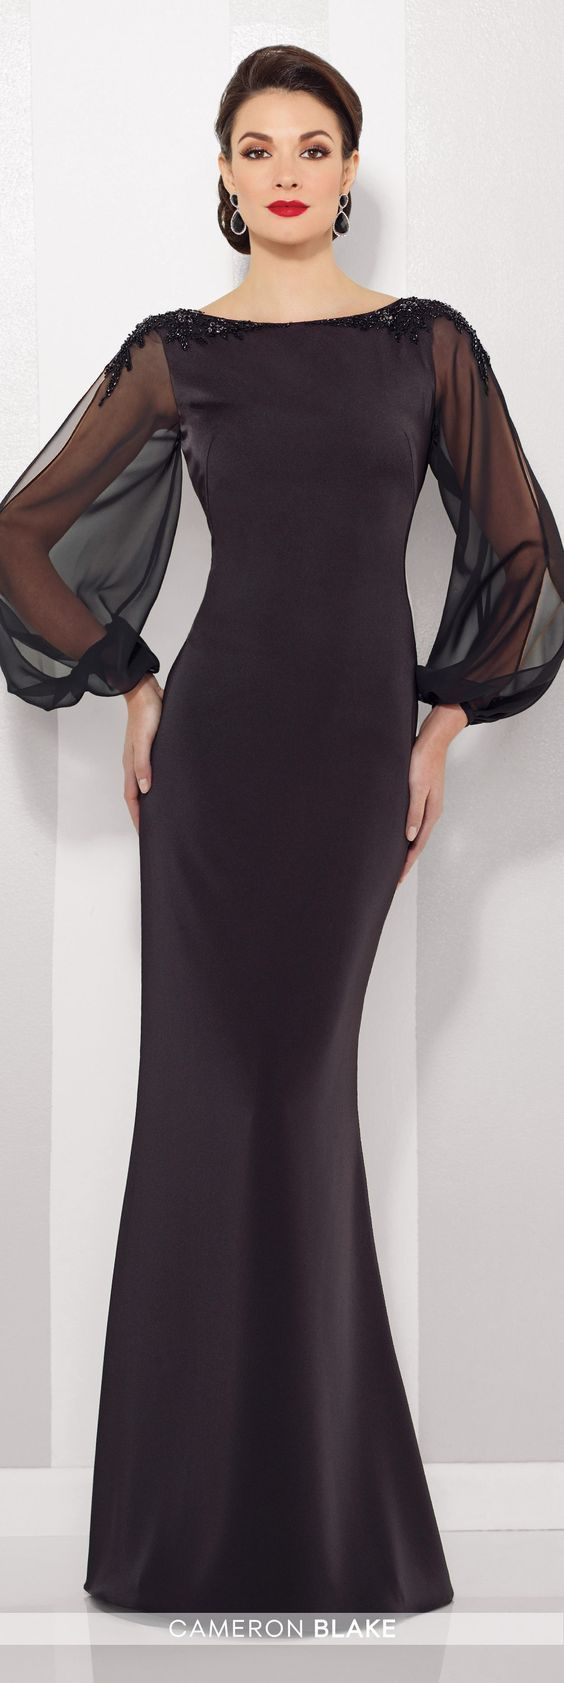 Formal Evening Gowns by Mon Cheri - Fall 2016 - Style No. 216680 - black evening gown with illusion chiffon long sleeves